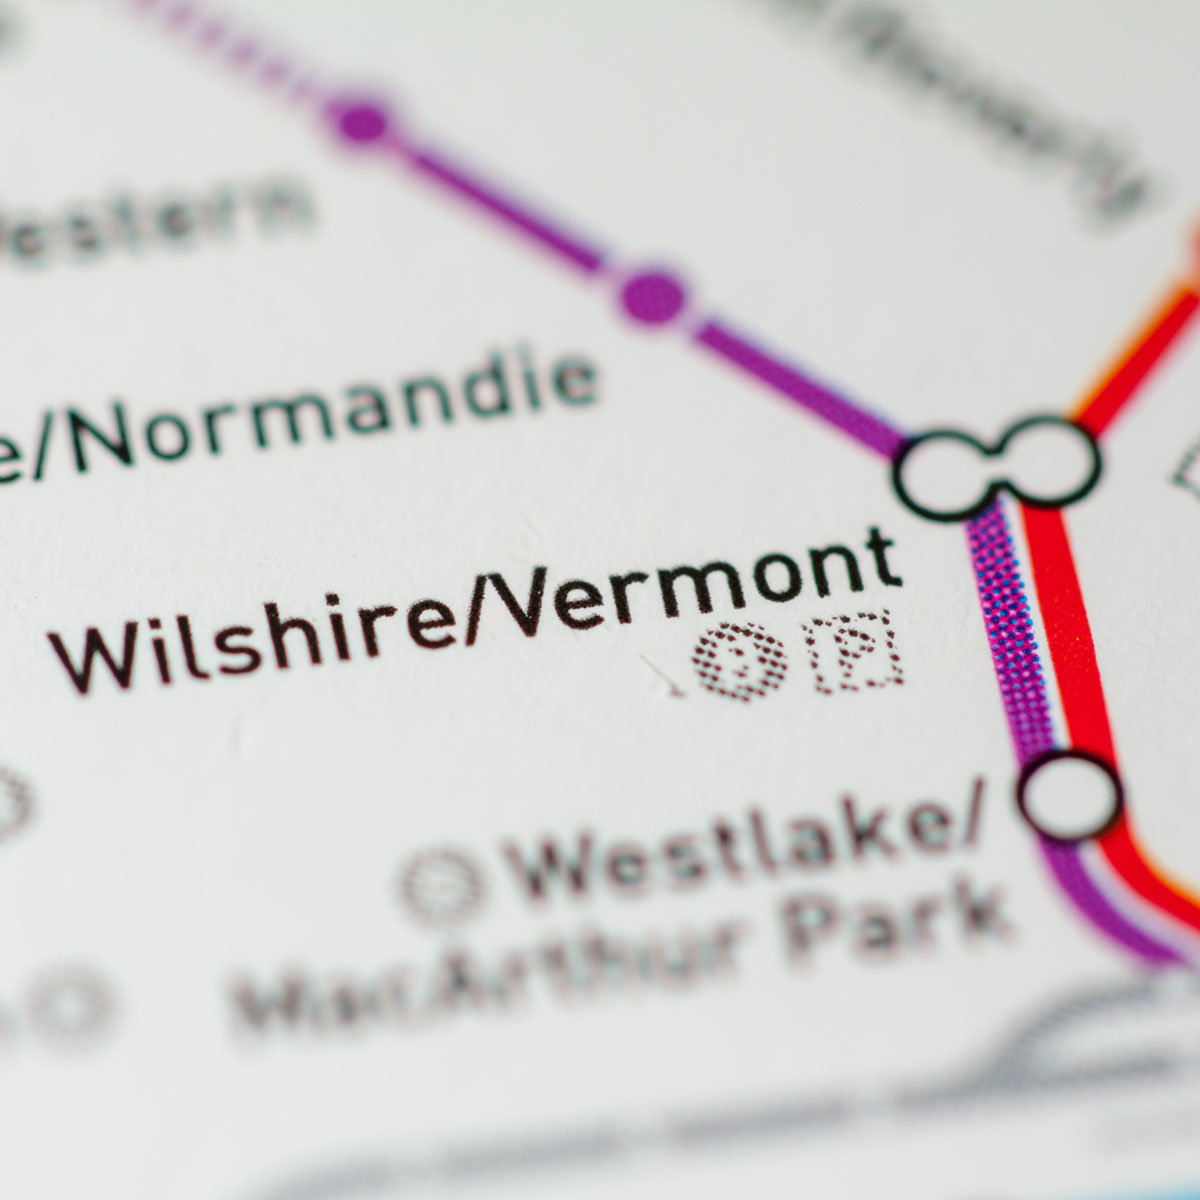 Map of Wilshire/Vermont Transit Station